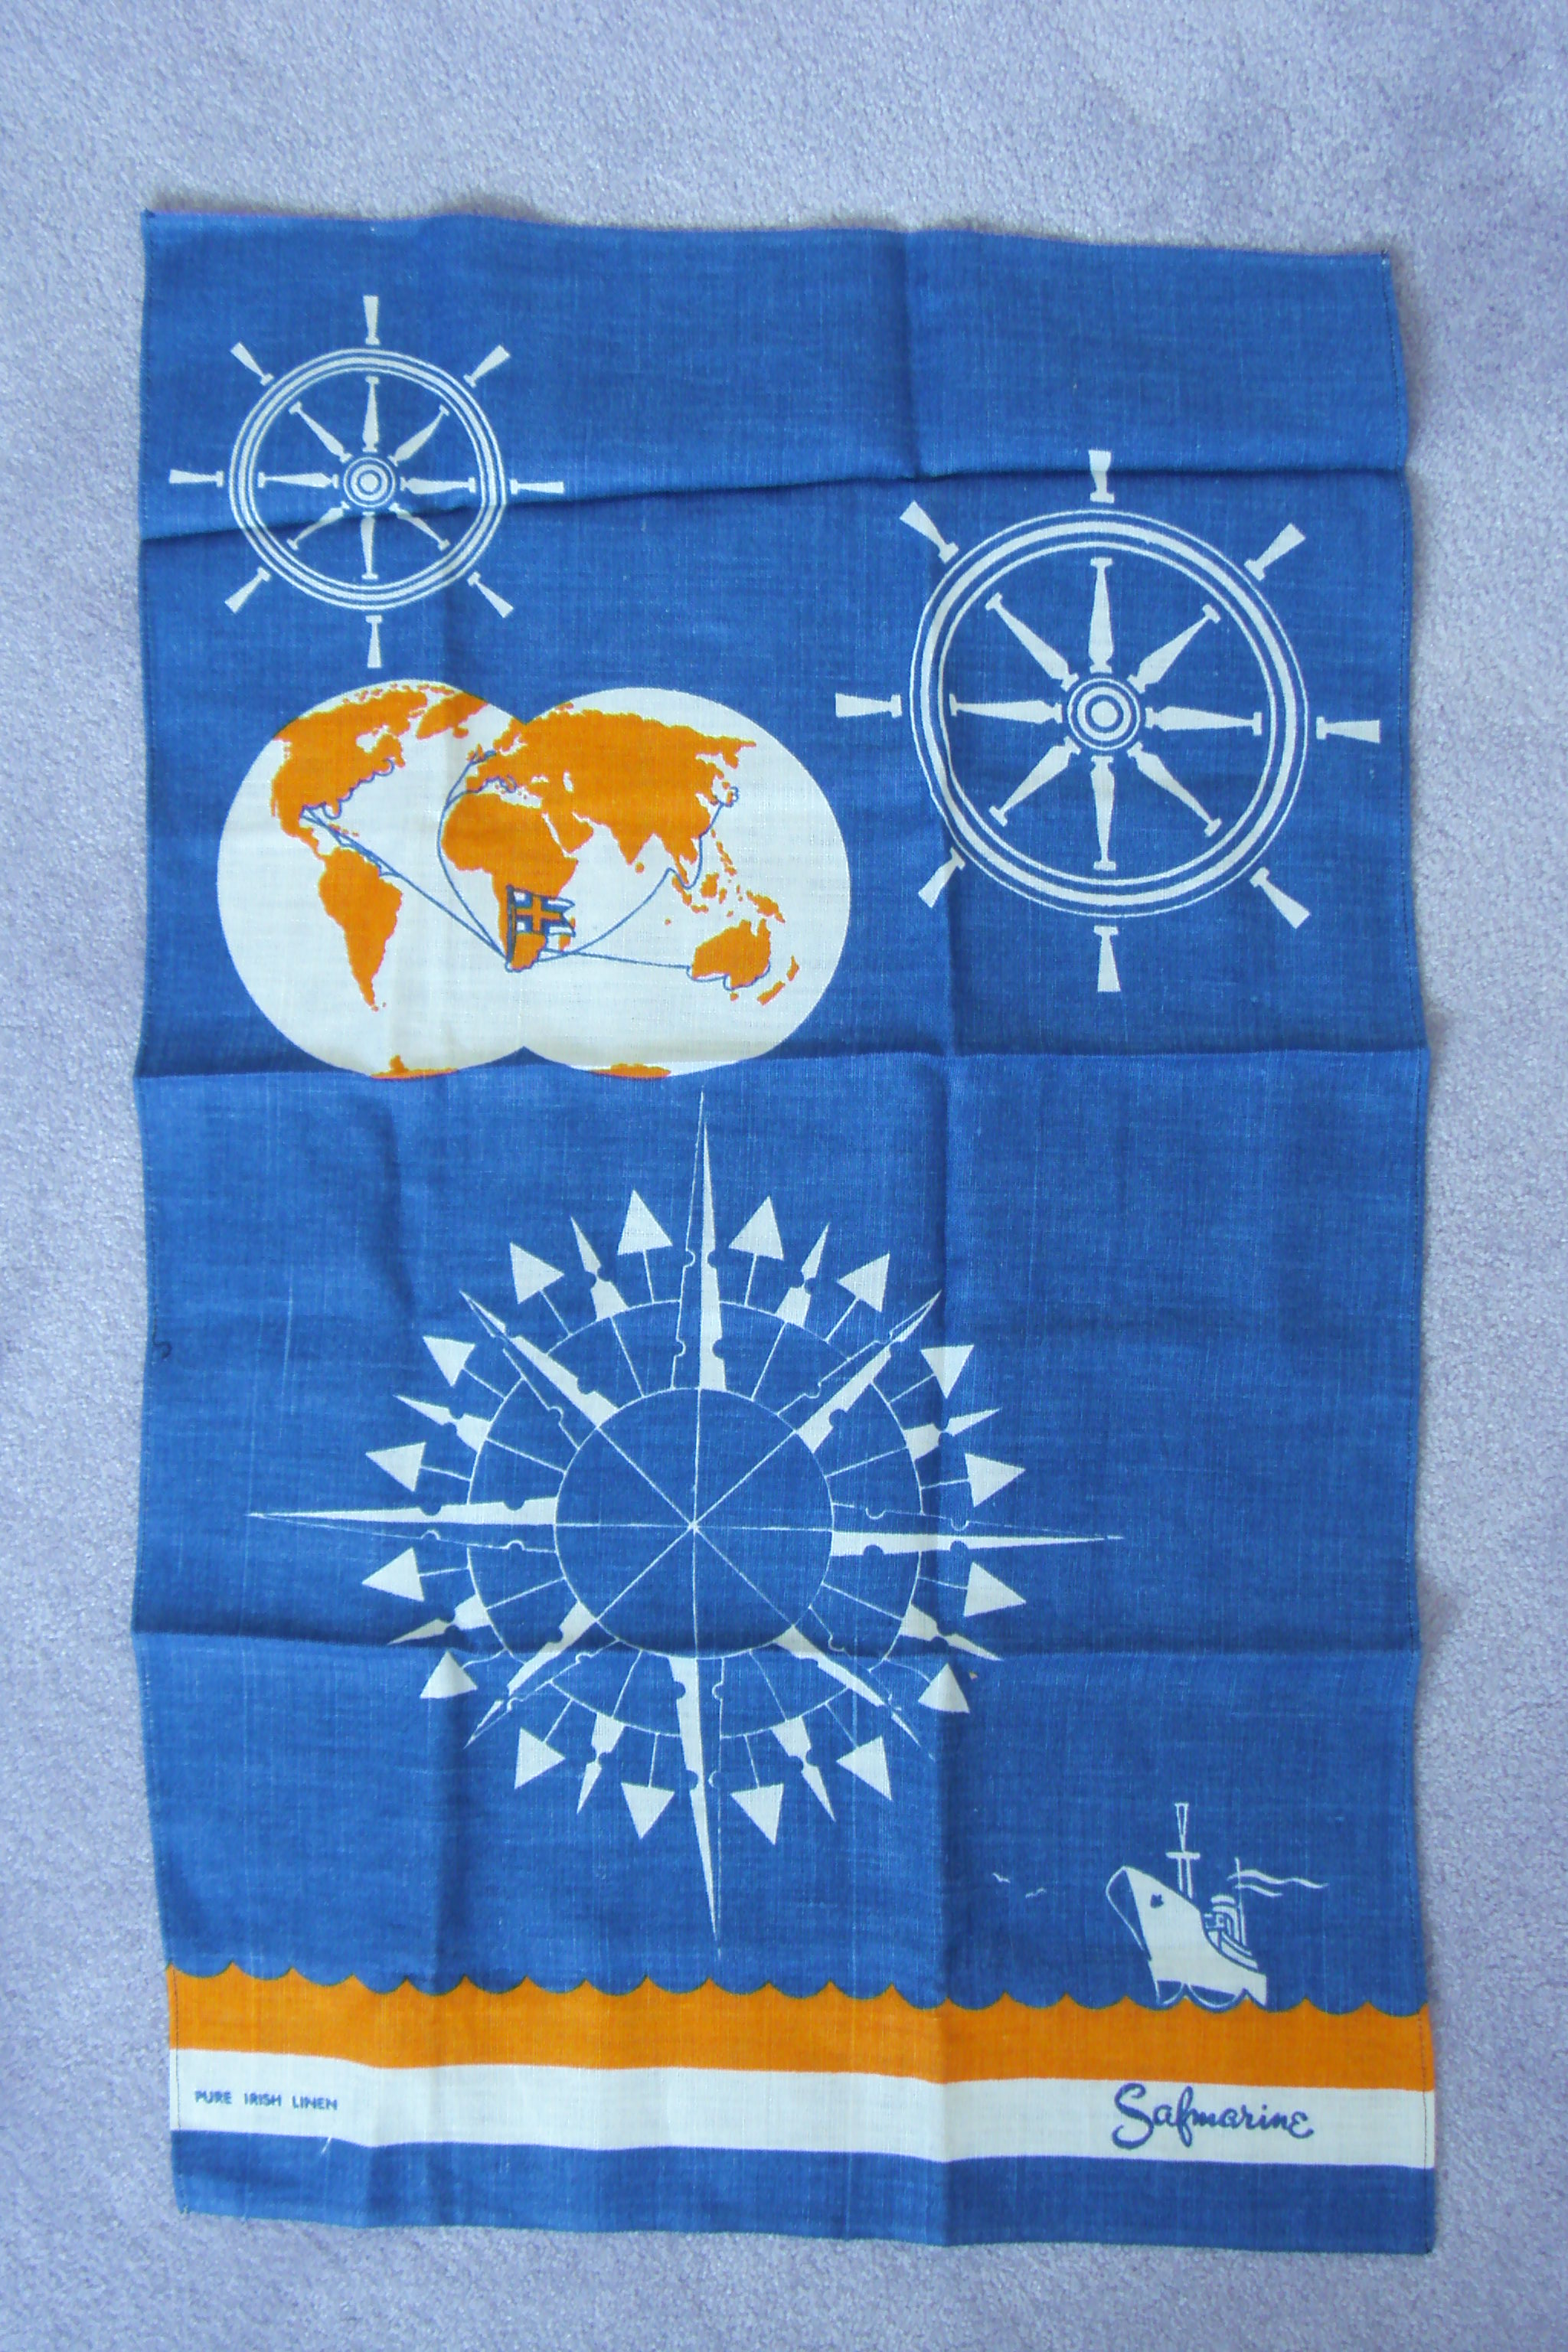 UNUSED TEA TOWEL FROM THE SOUTH AFRICAN MARINE LINE SHIPPING COMPANY